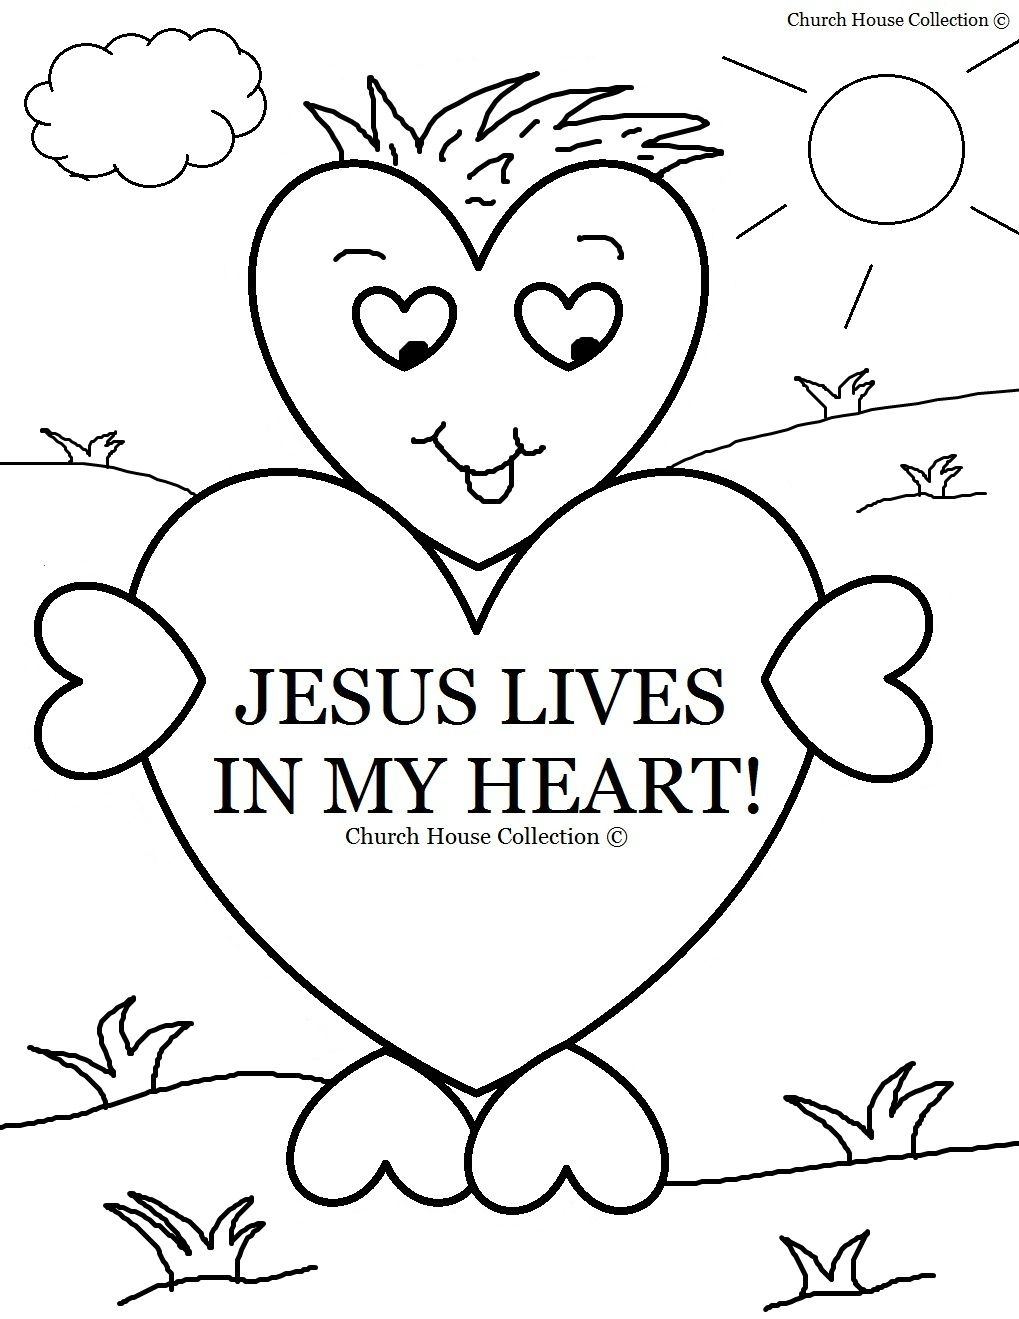 Church House Collection Blog: Jesus Lives In My Heart Coloring ...